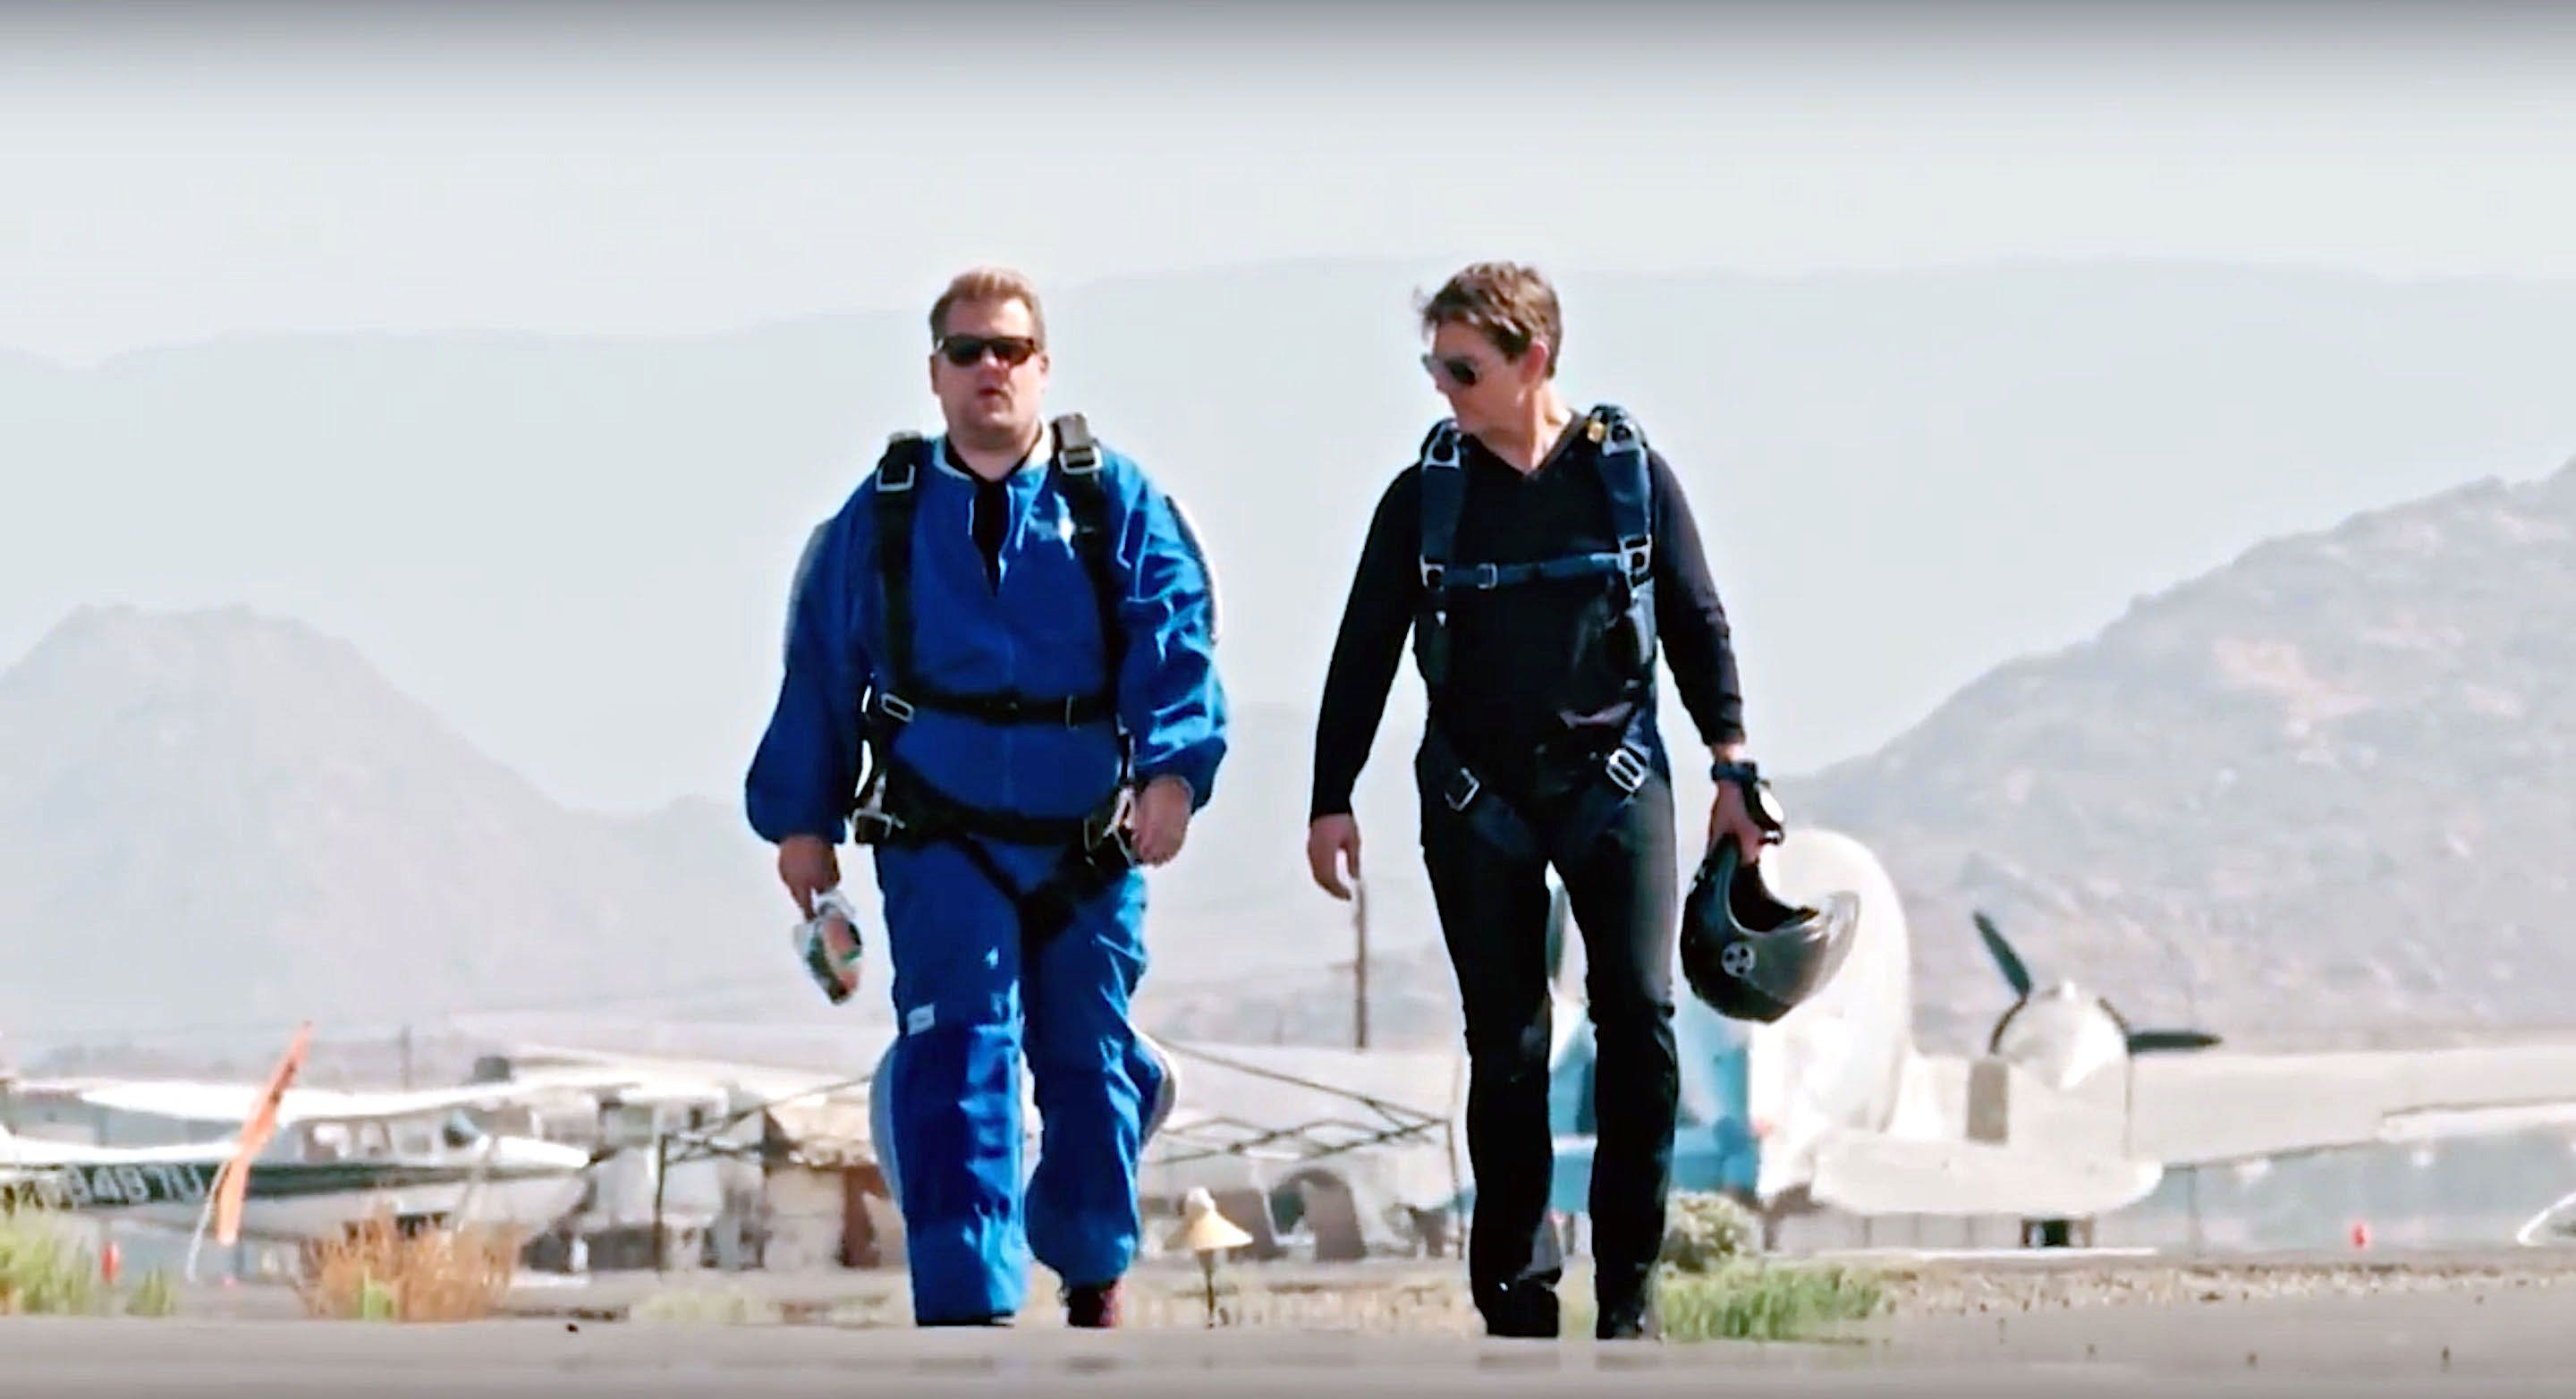 James Corden and Tom Cruise going sky diving